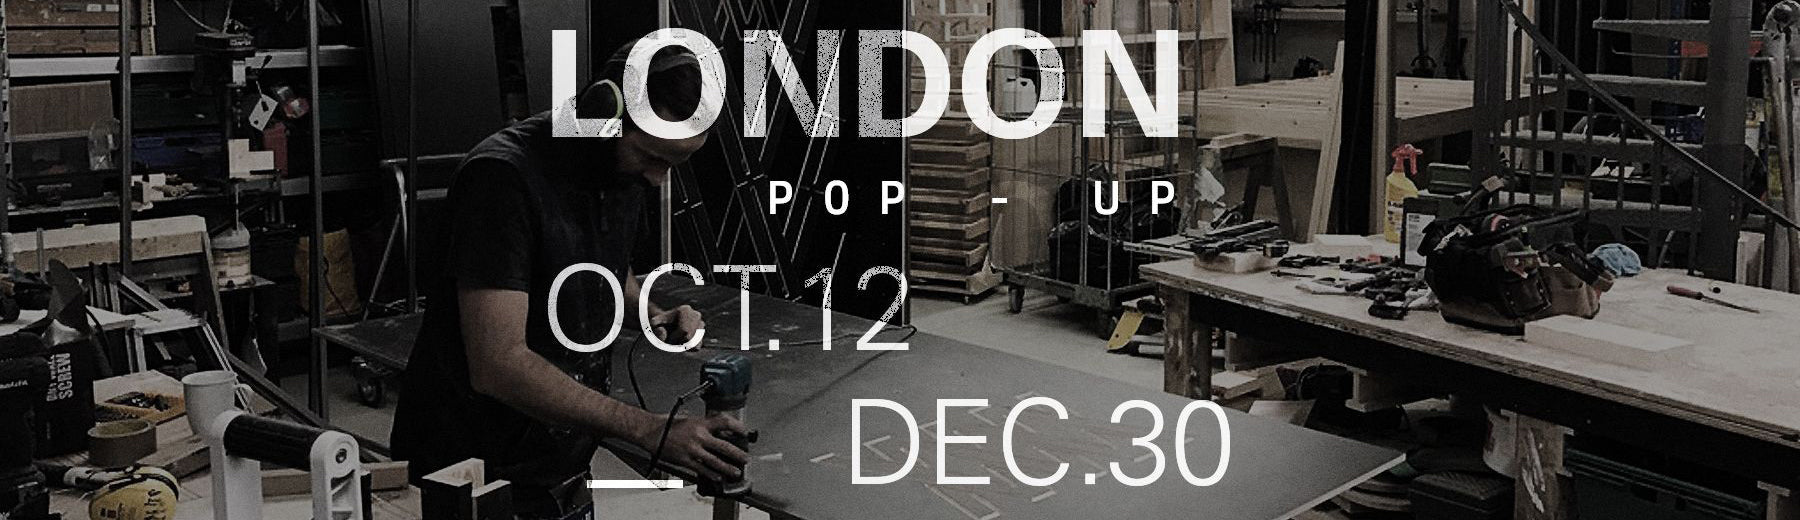 MISSION WORKSHOP London pop-up 2017